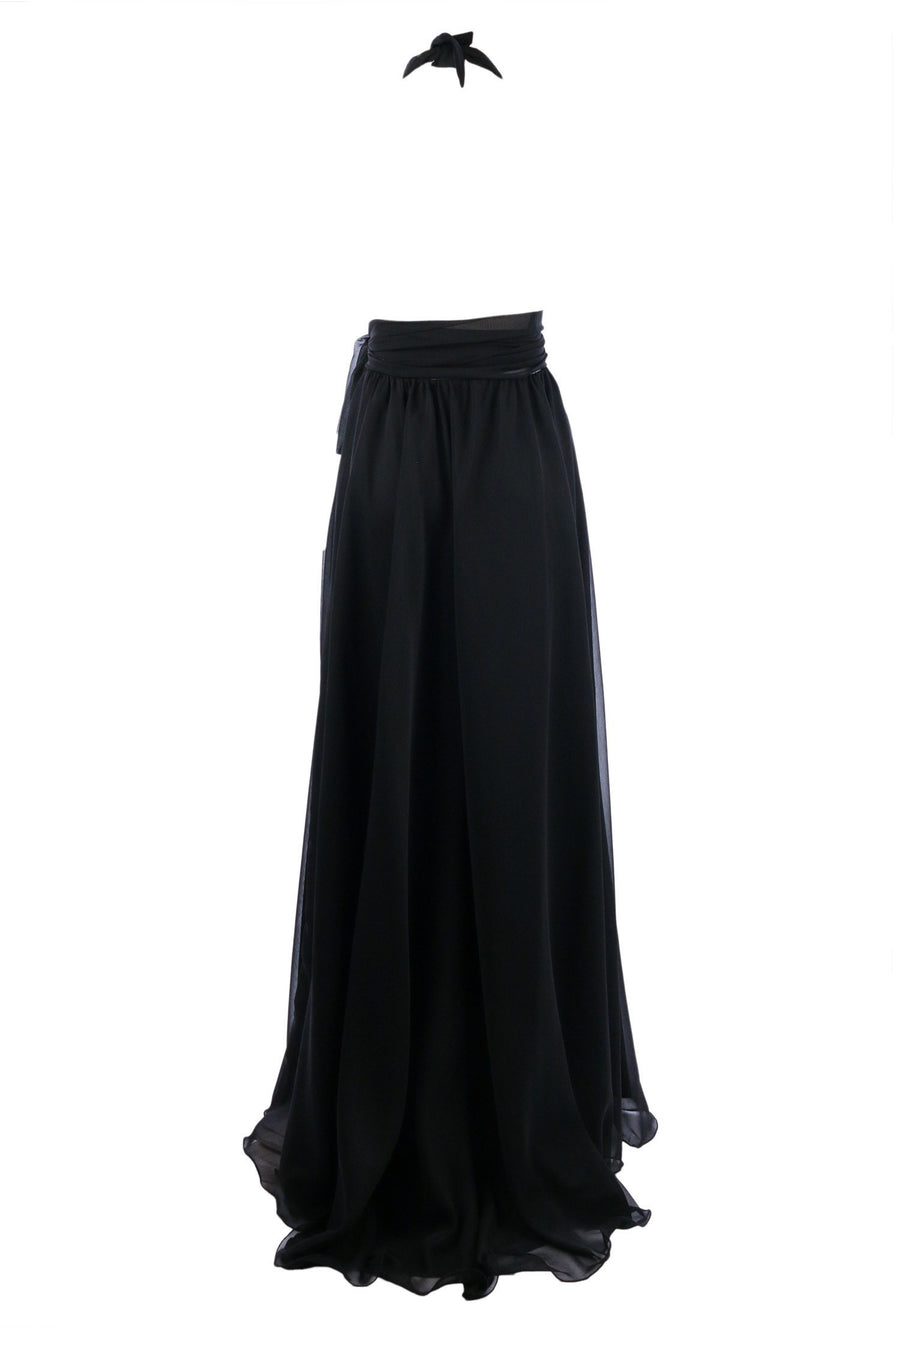 harlow-gown-in-black-chiffon-by-lucy-laurita